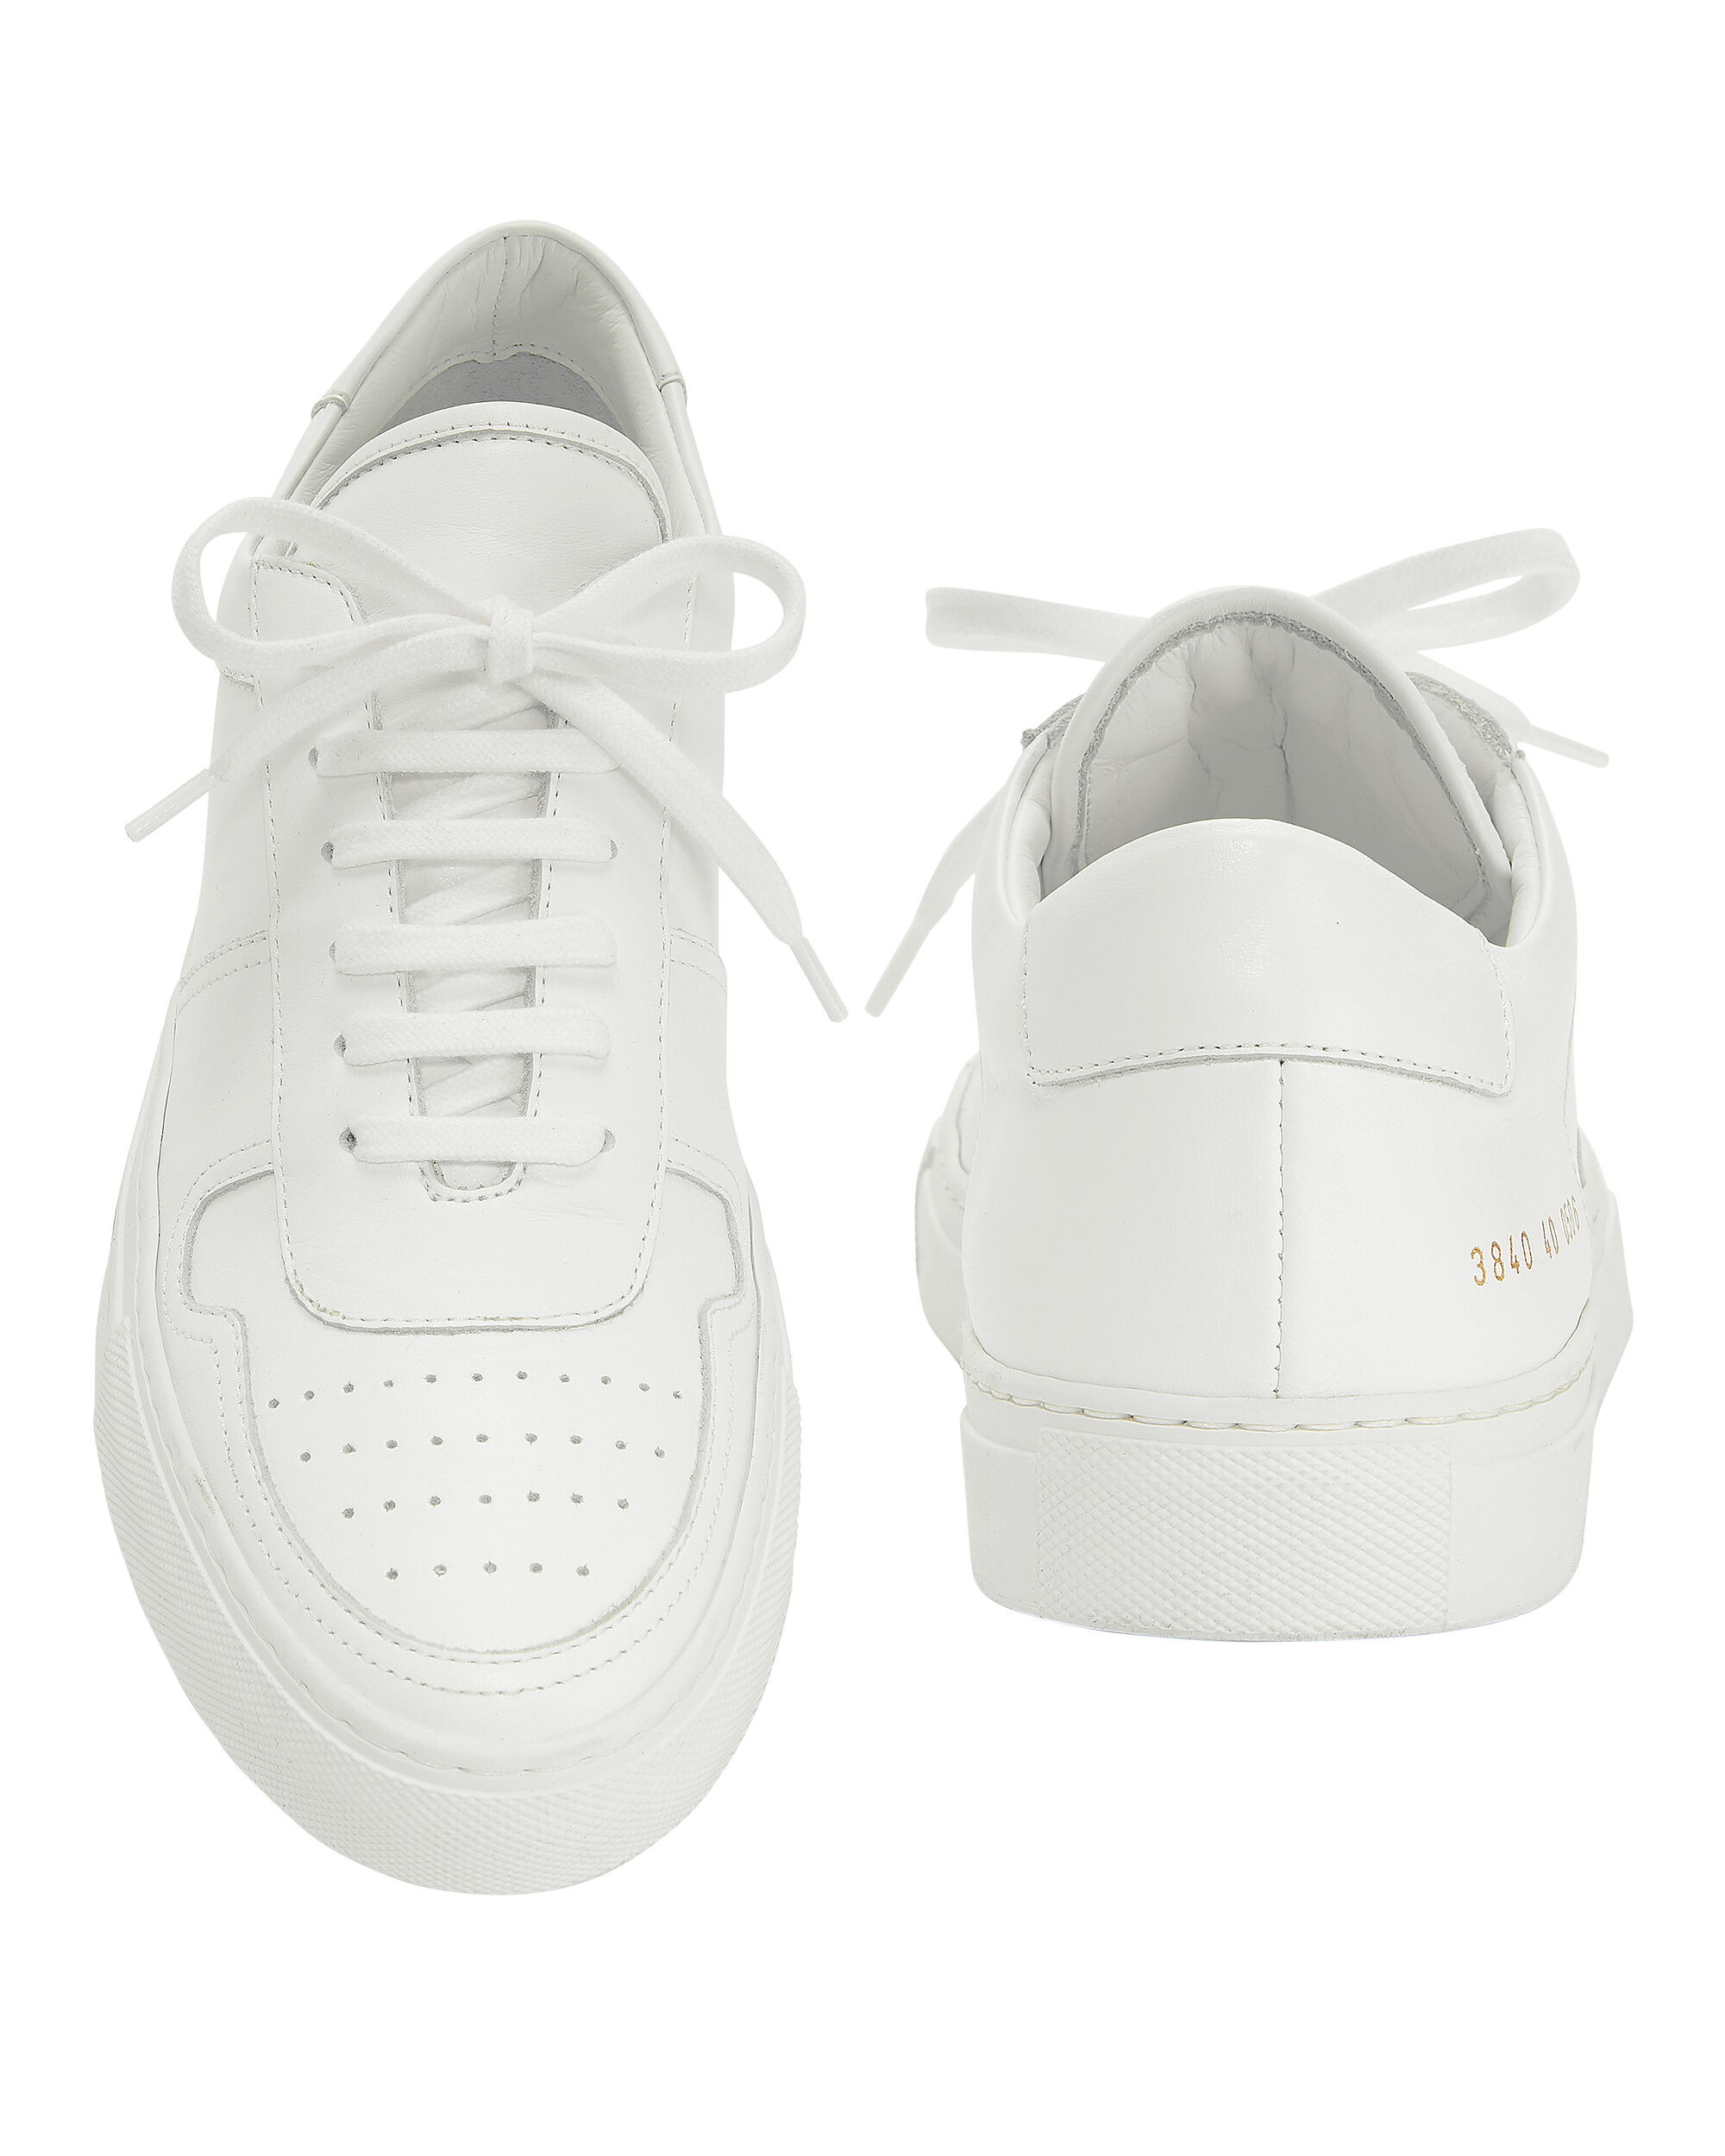 BBall Low Top Leather Sneakers, WHITE, hi-res